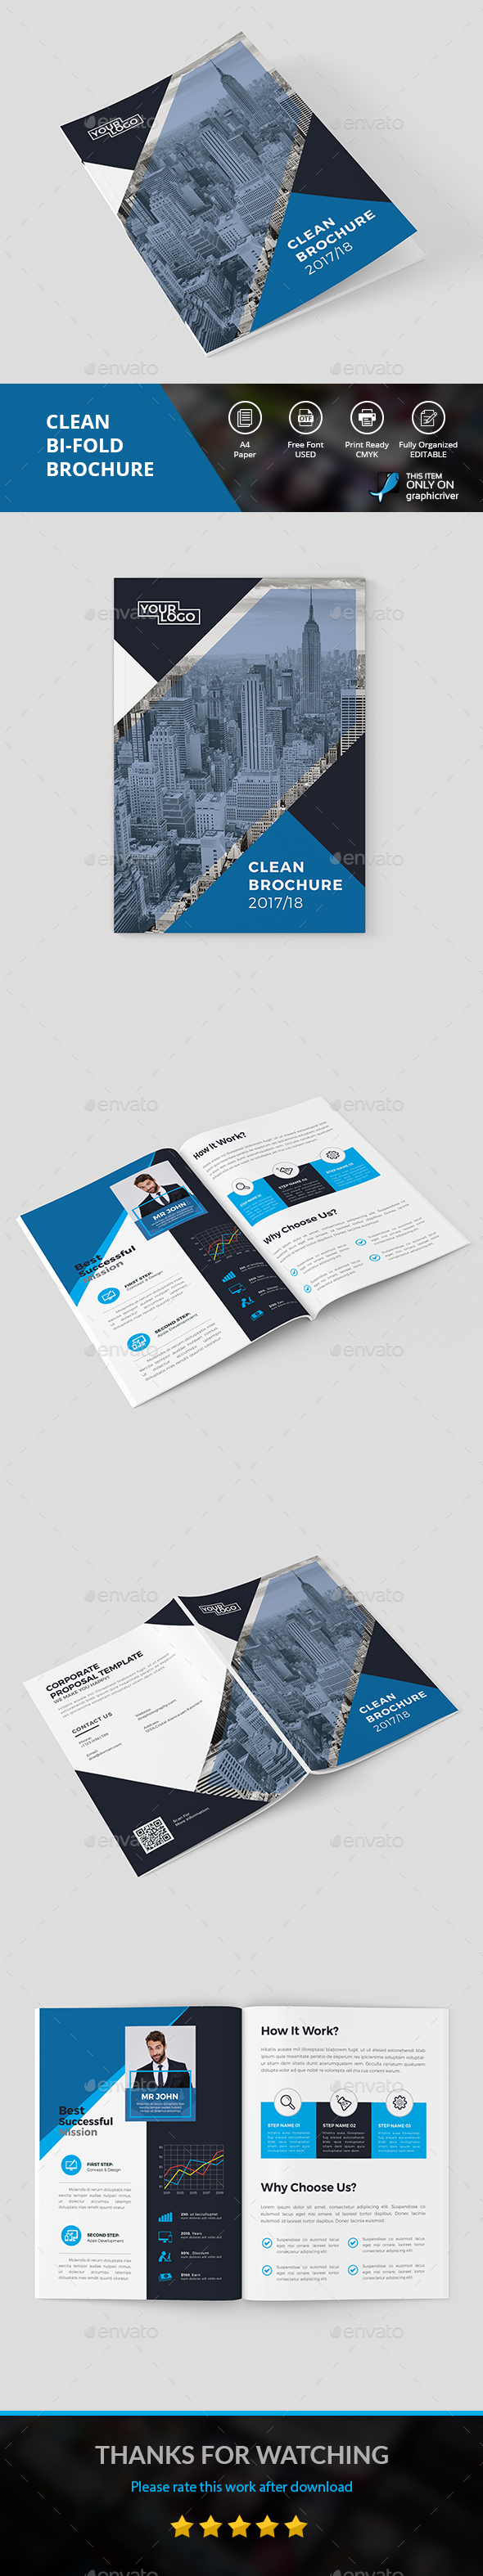 Clean Brochure - Corporate Brochures